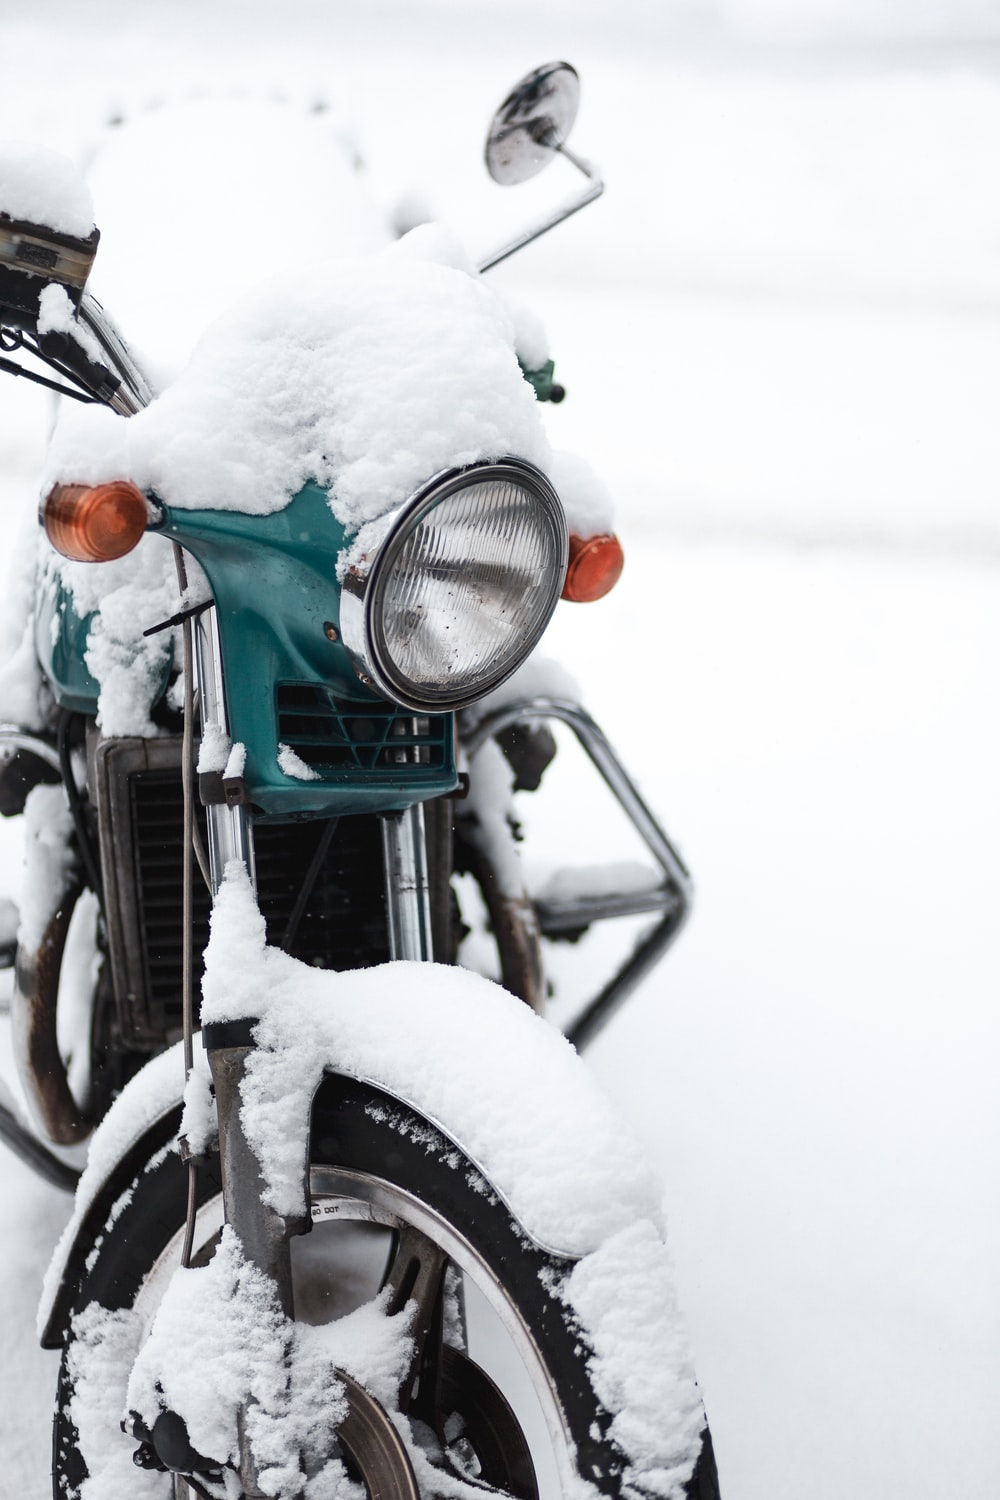 green and black motorcycle on snow covered ground during daytime